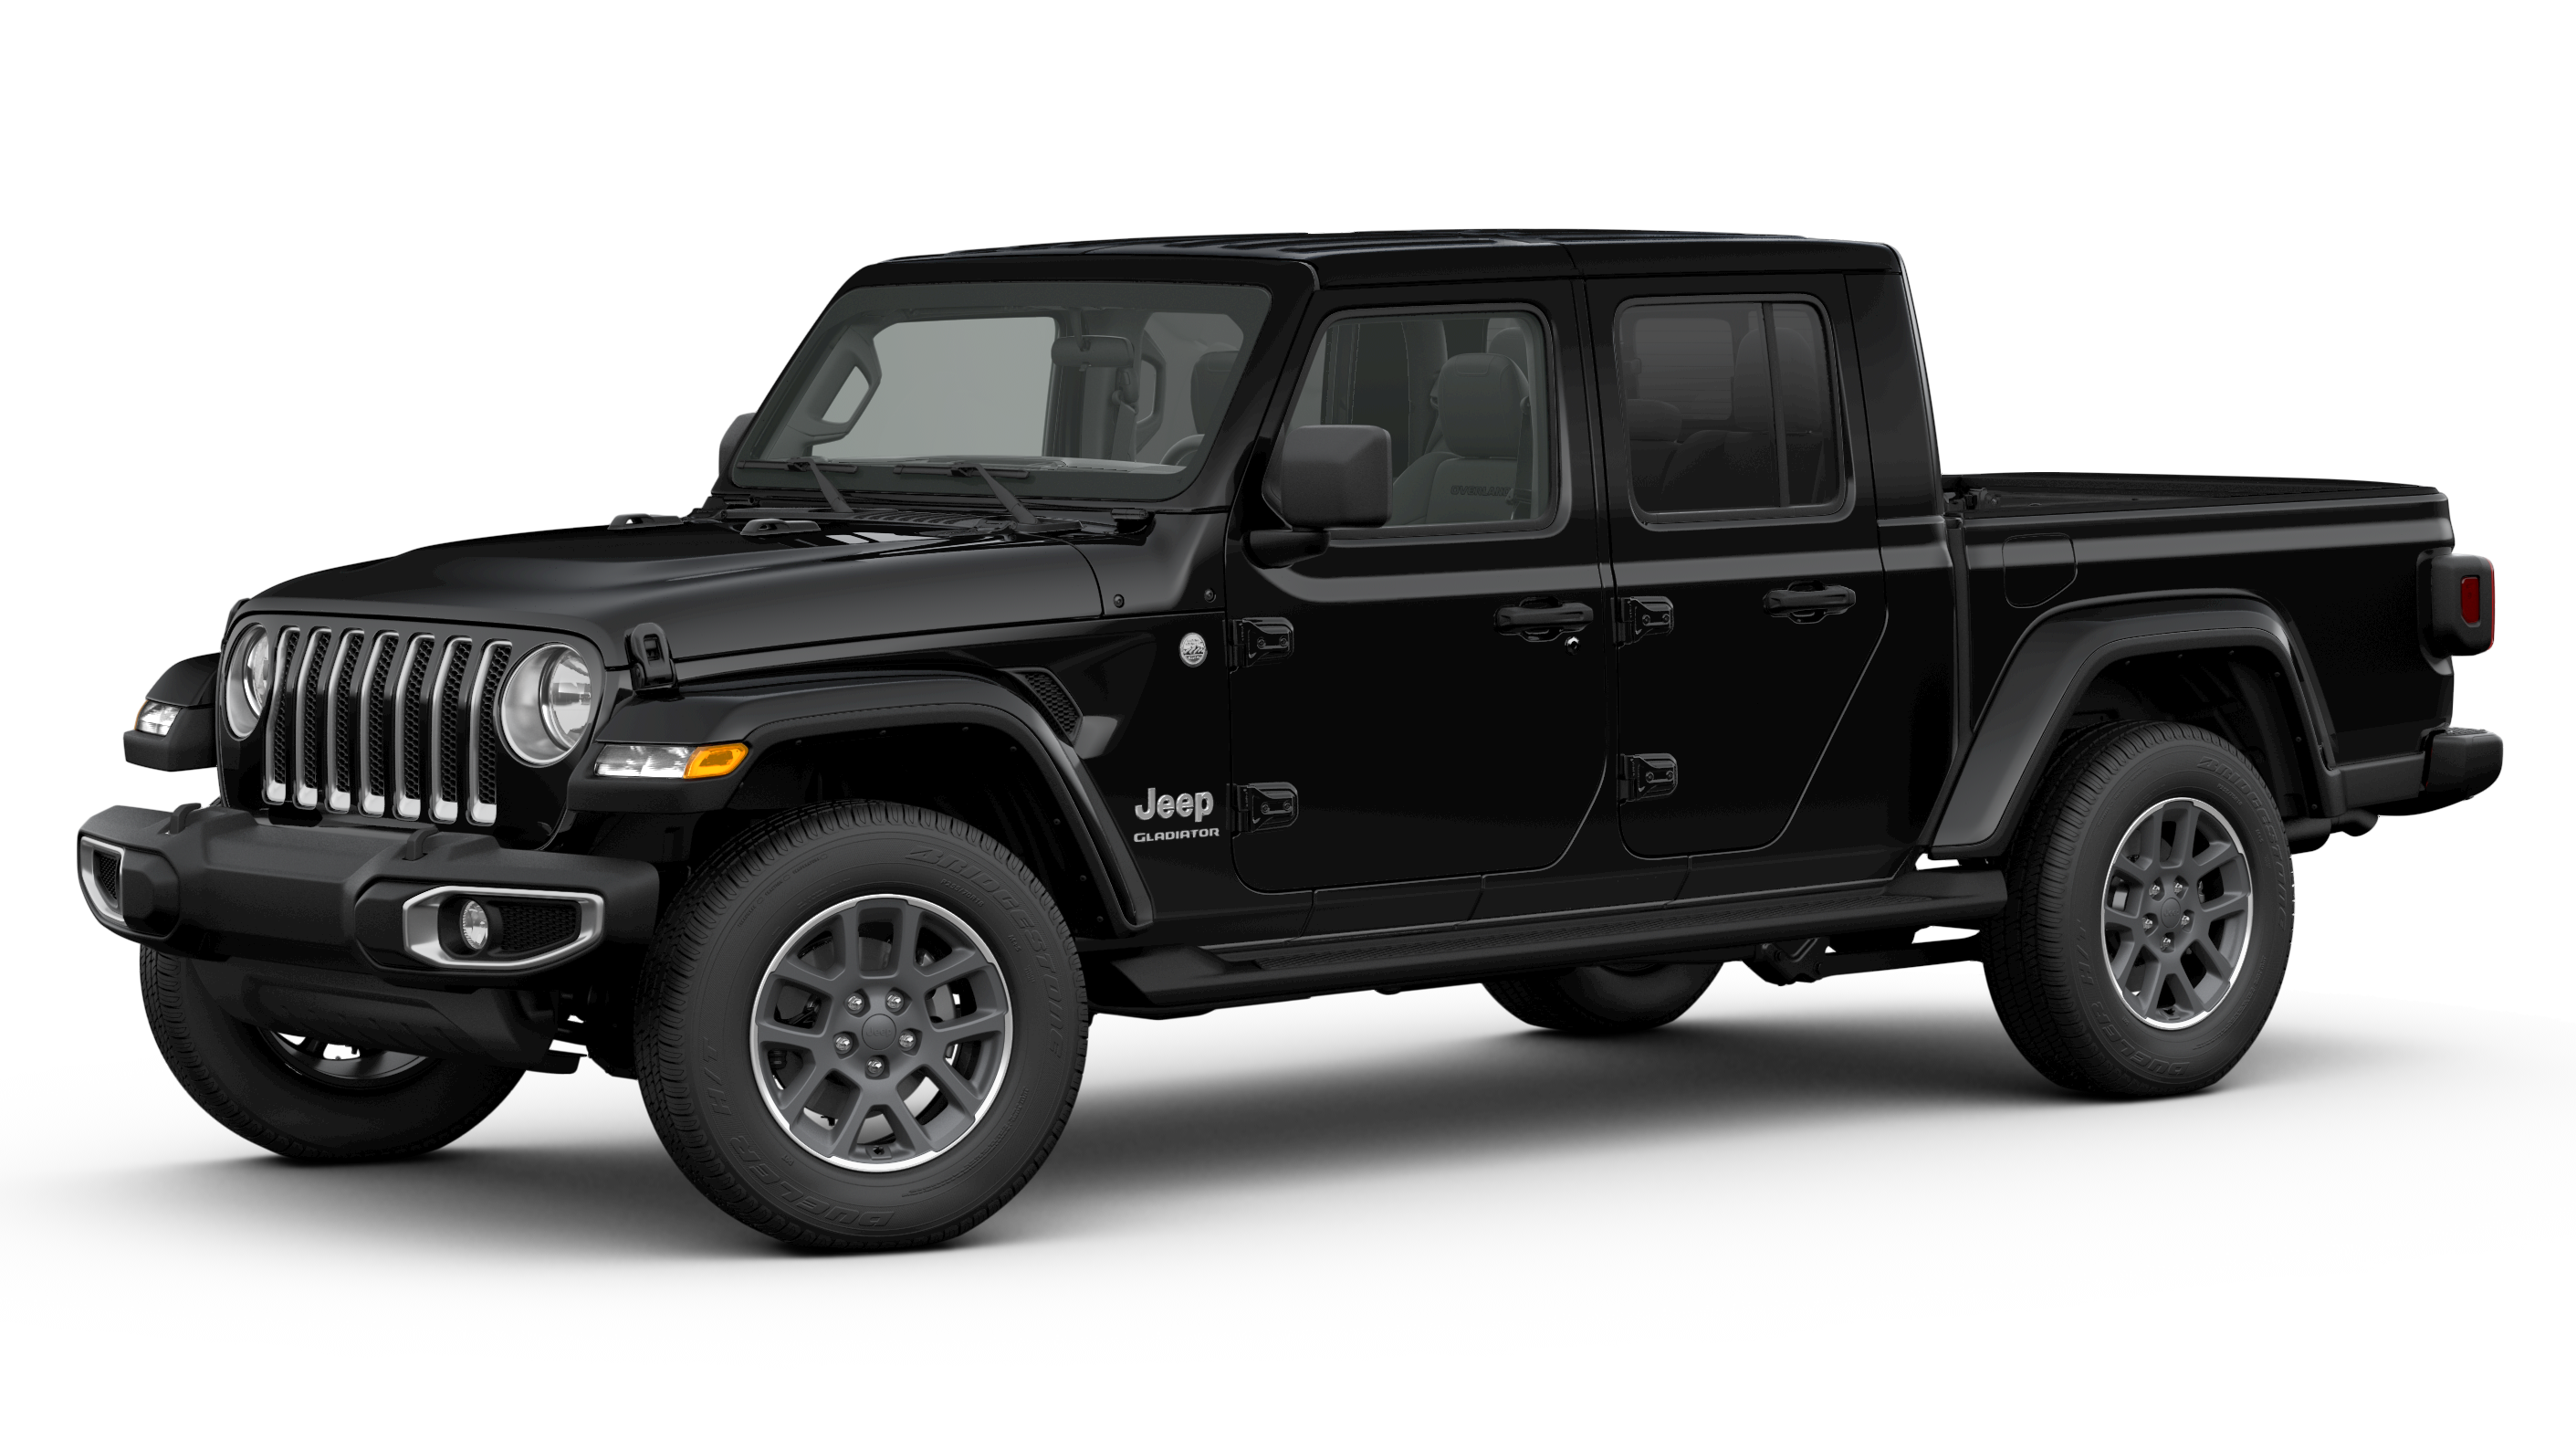 New Jeep Gladiator for sale or lease in Bountiful